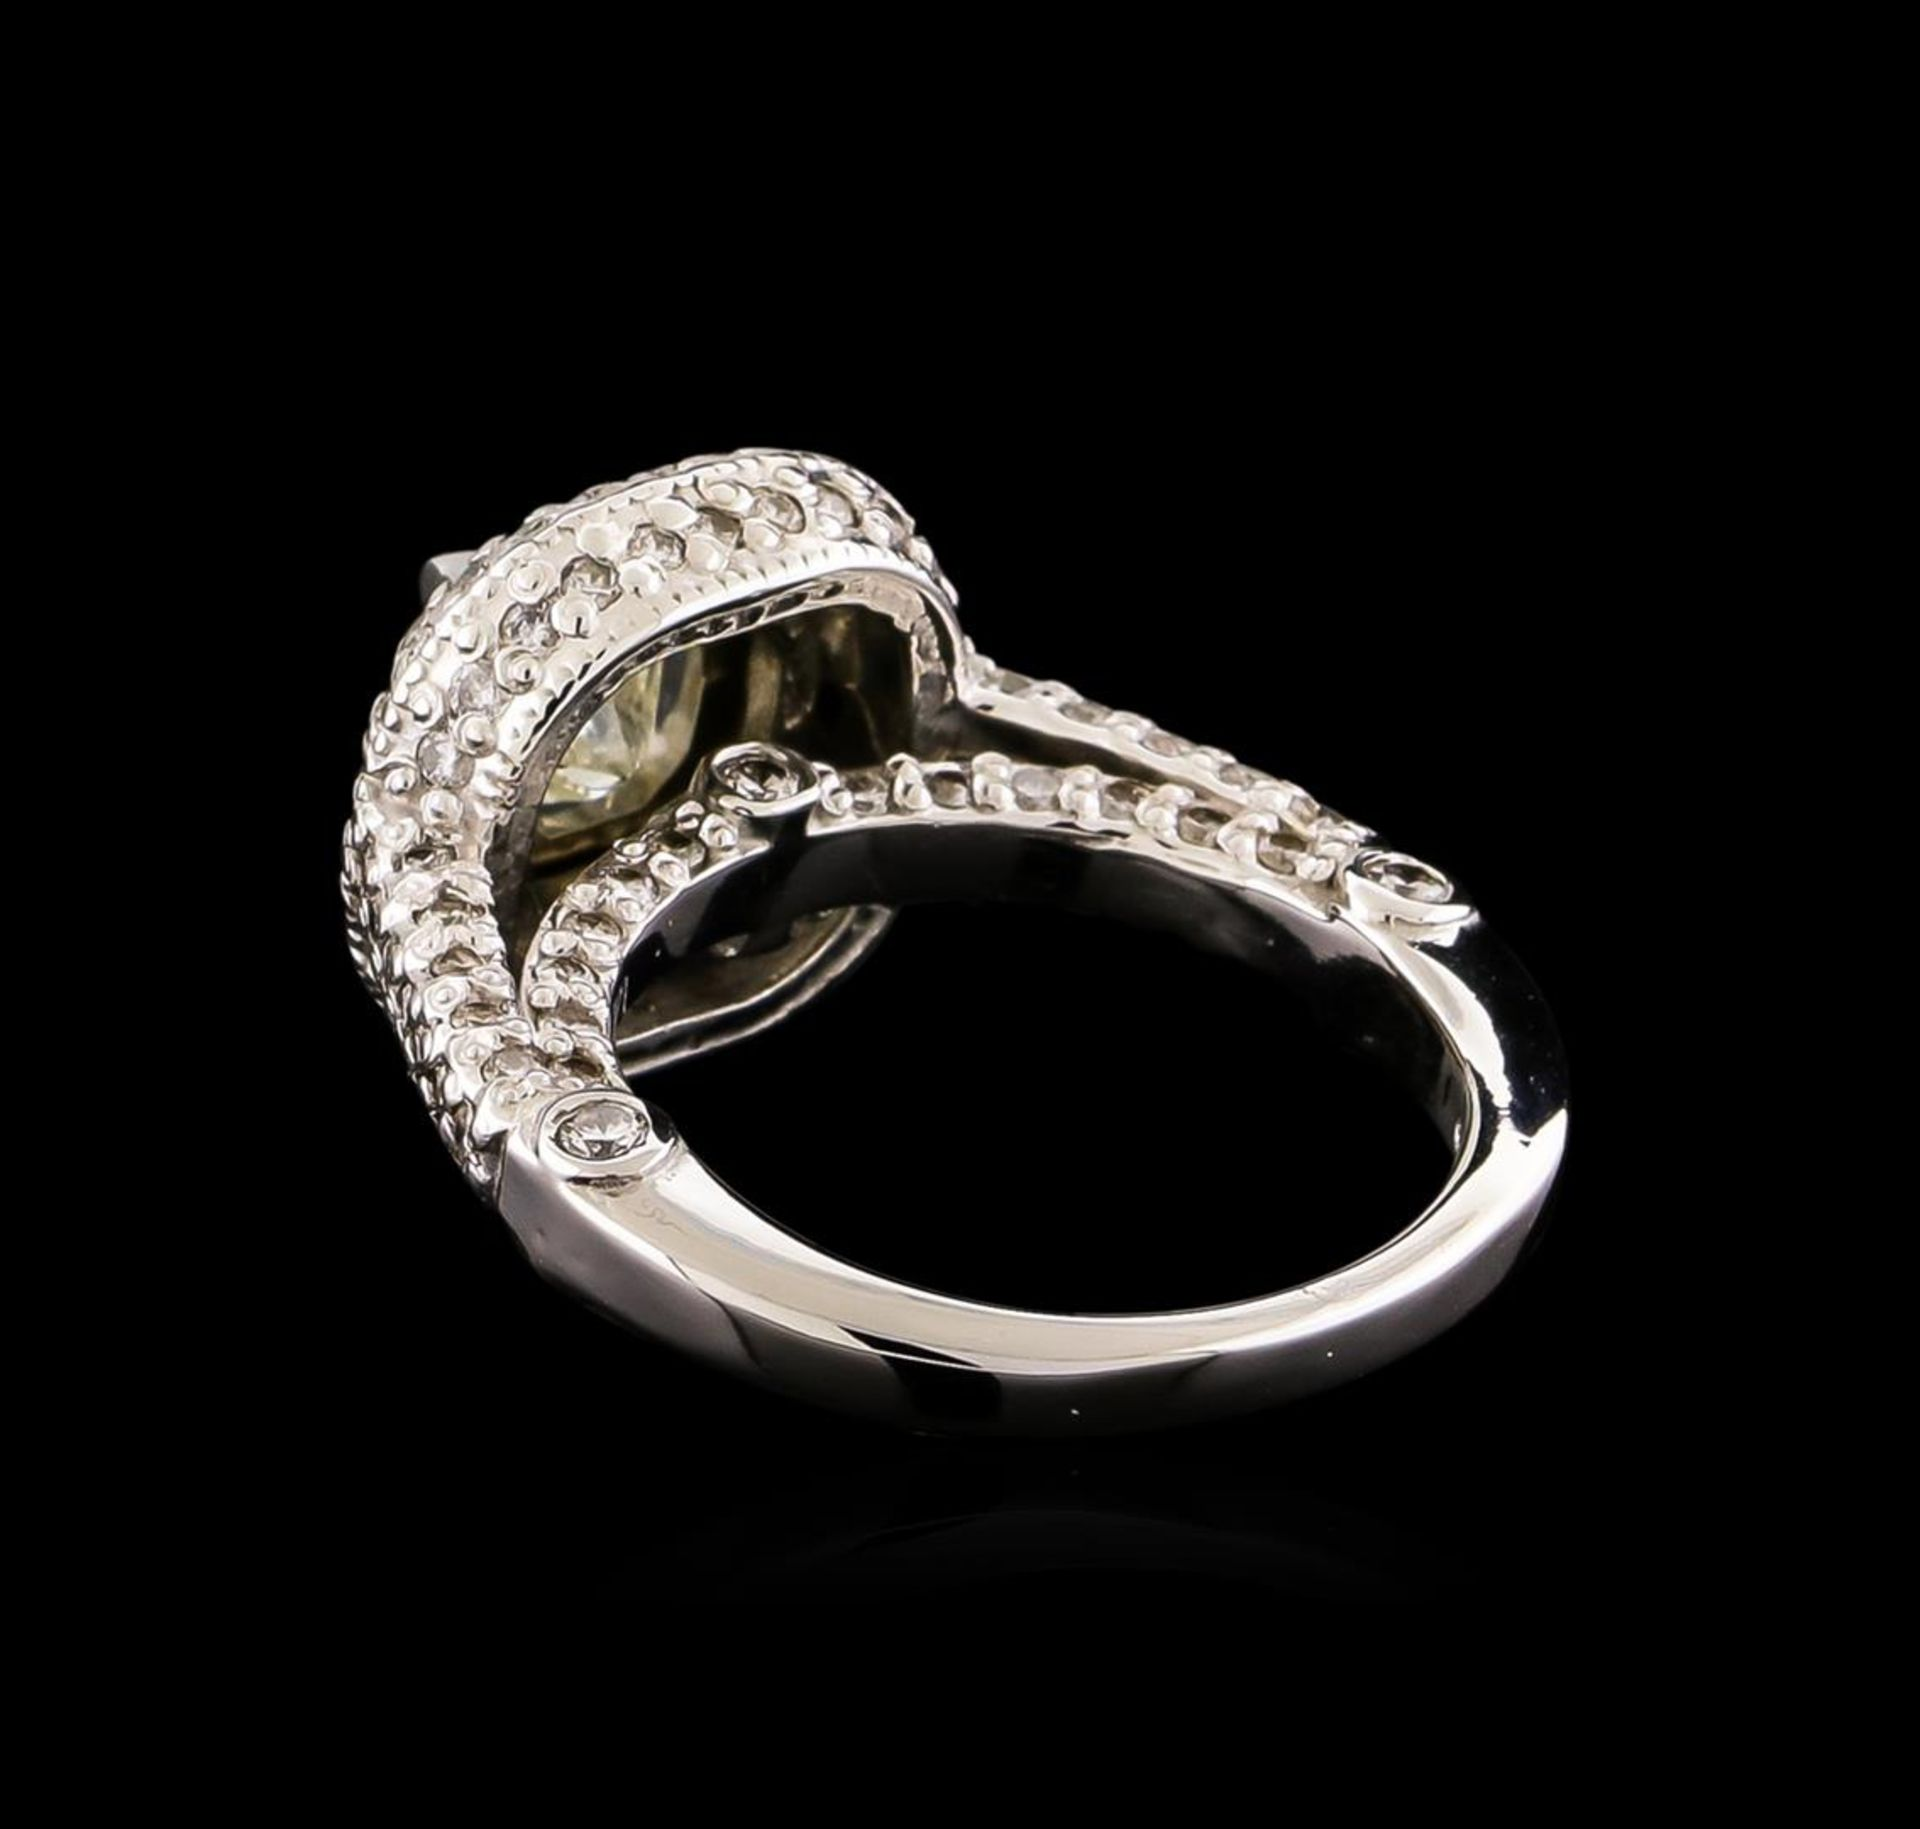 14KT White Gold 1.78 ctw Diamond Ring - Image 3 of 5